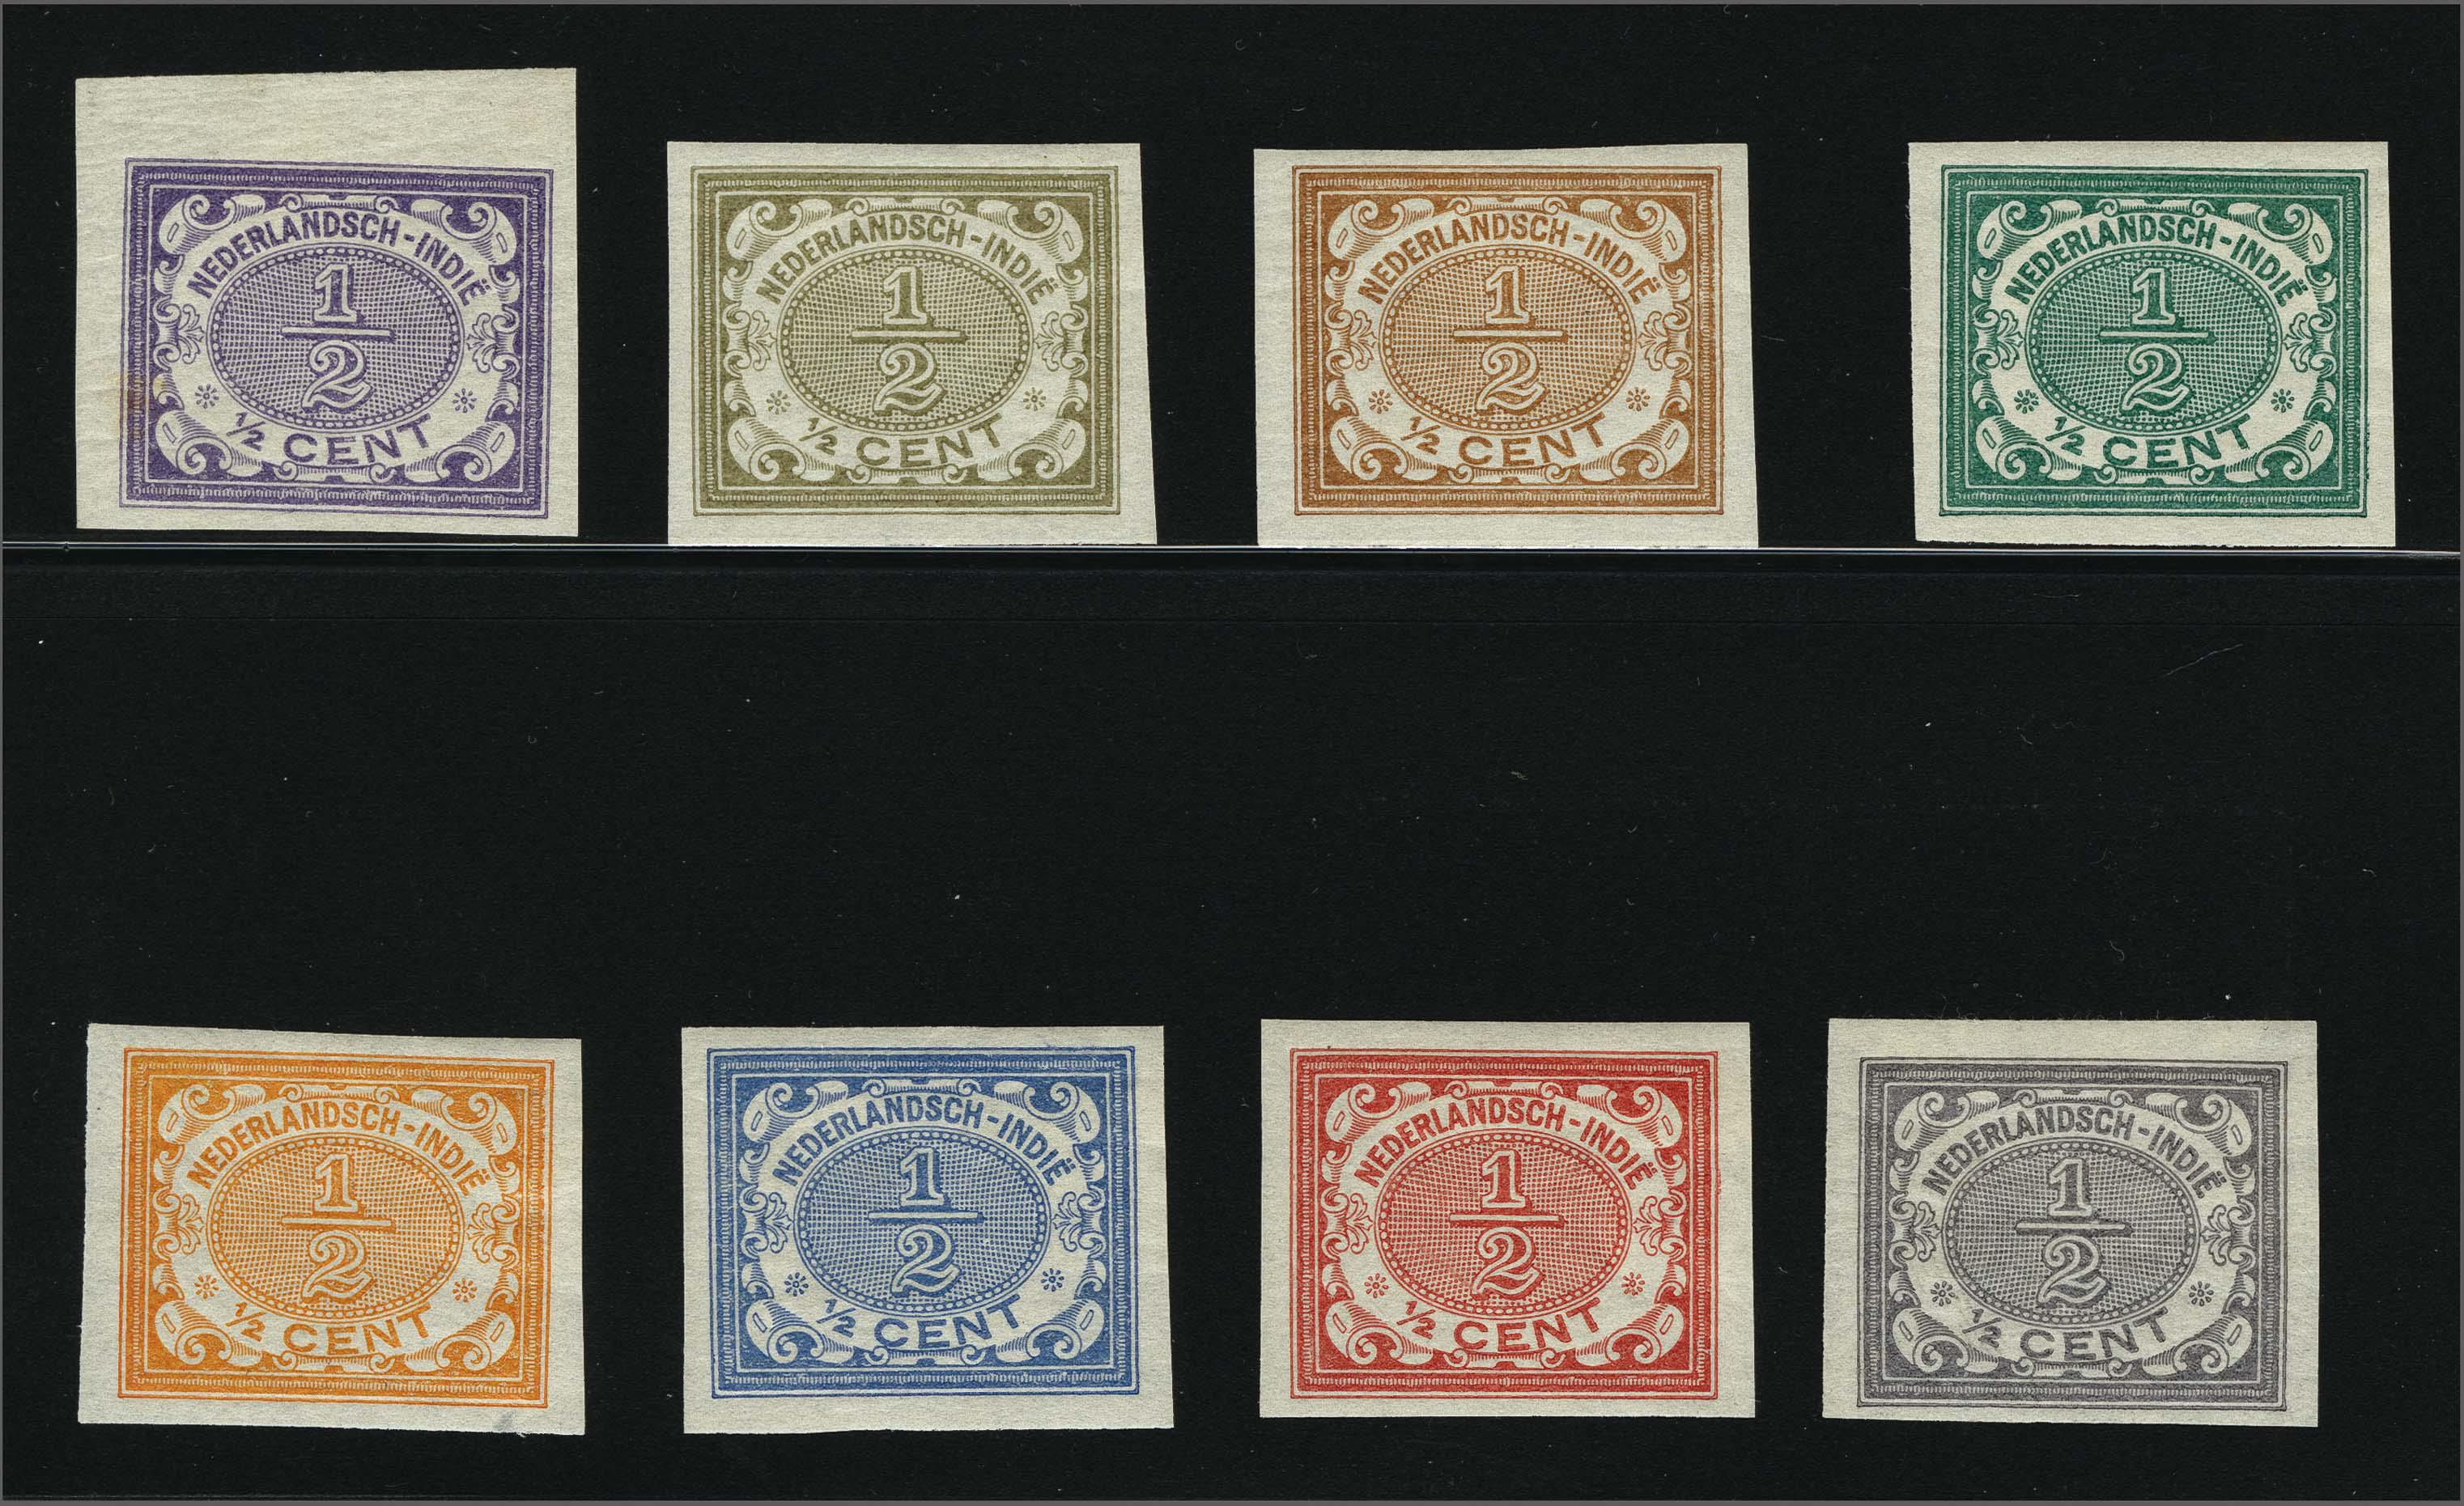 Lot 3312 - Netherlands and former colonies Netherlands Indies -  Corinphila Veilingen Auction 250-253 - Day 4 - Proofs of Netherlands former colonies